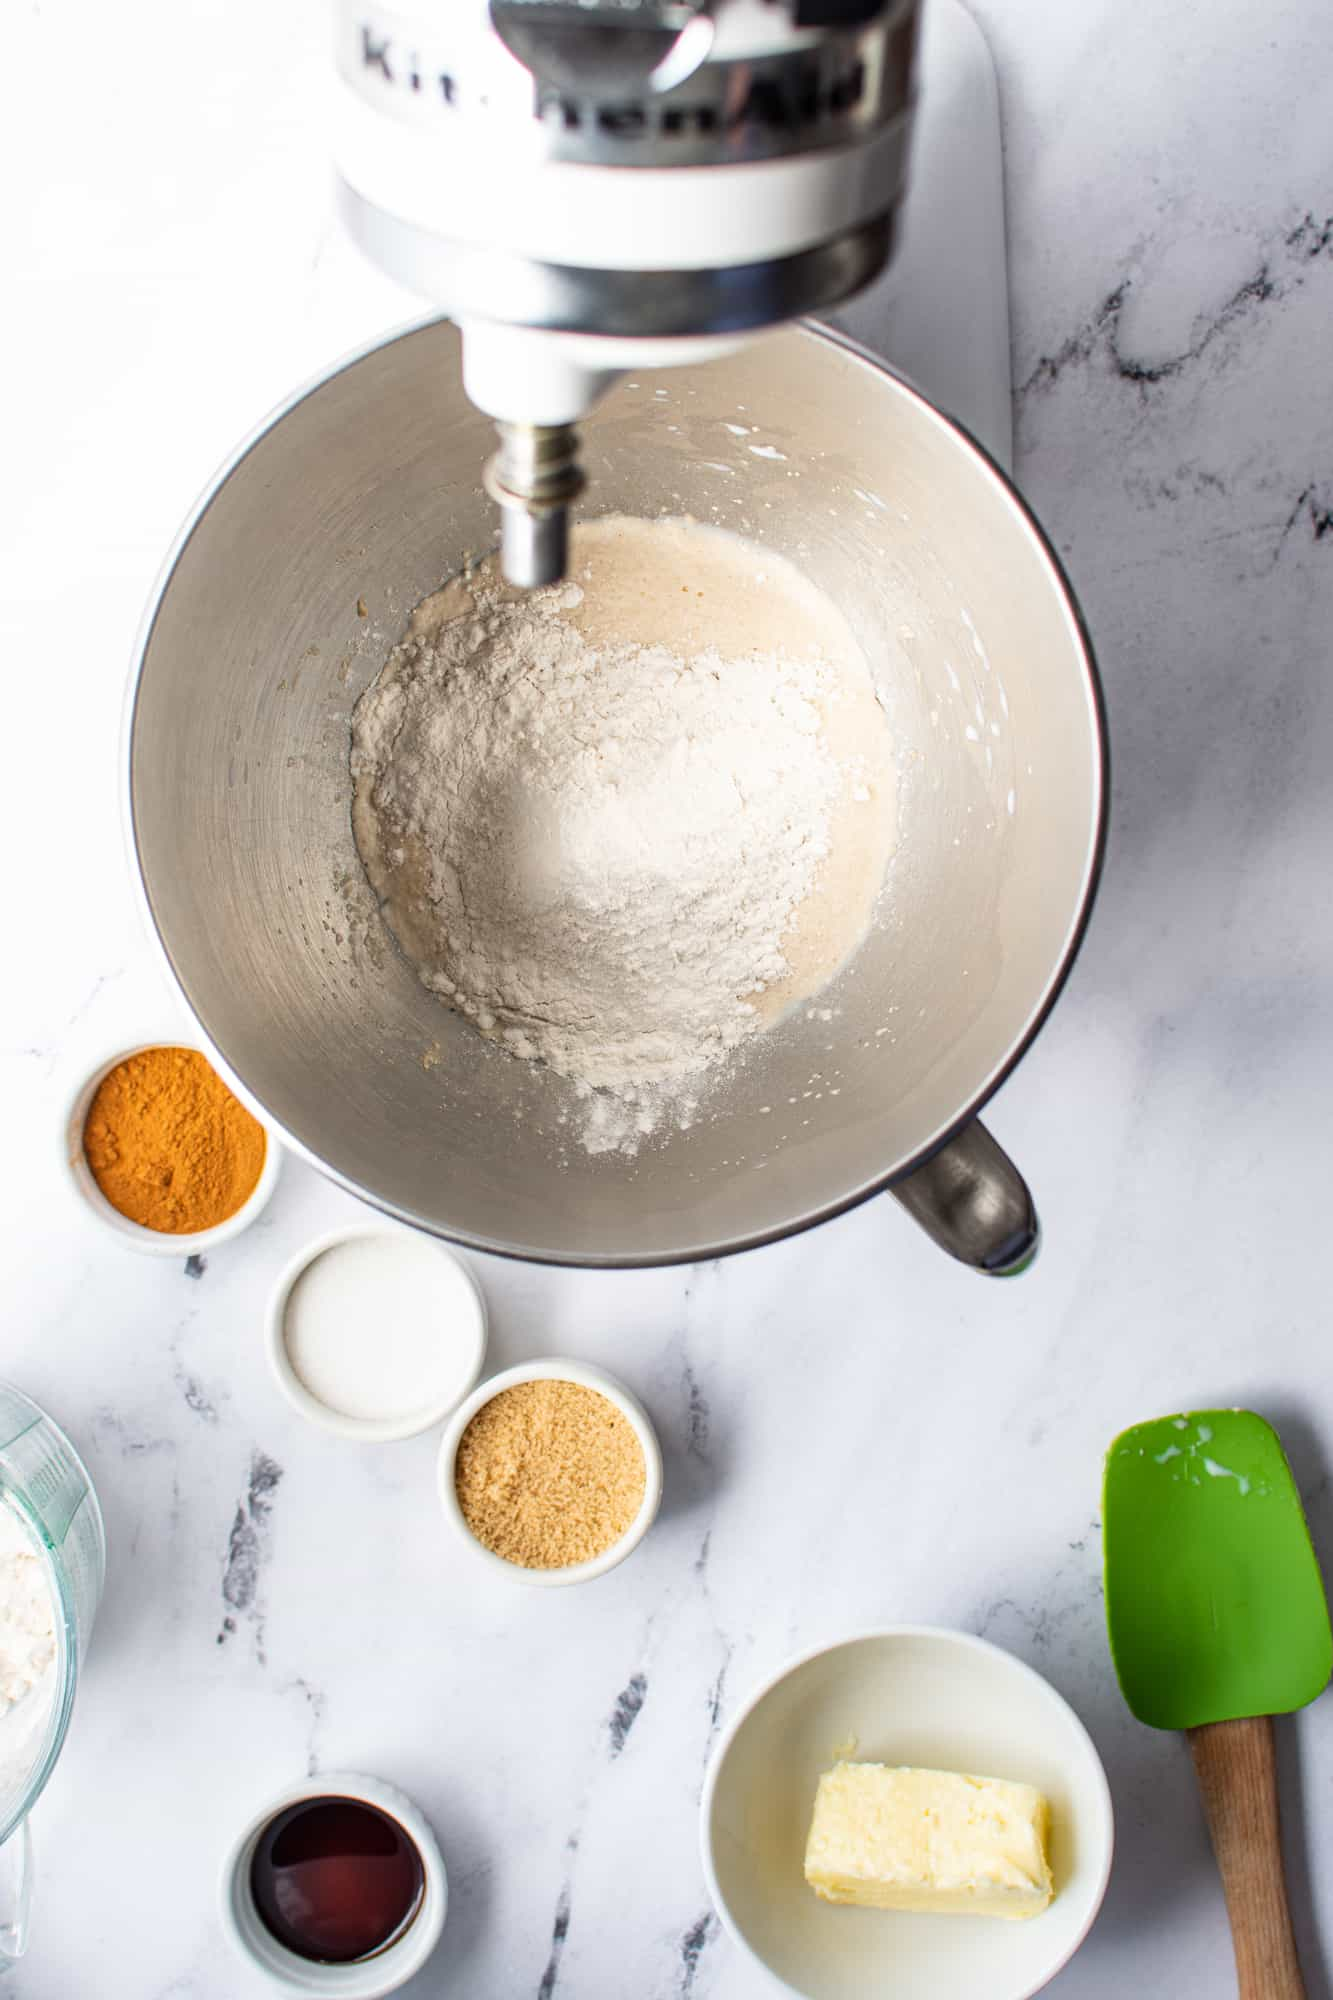 flour added to yeast mixture in the bowl of an electric stand mixer